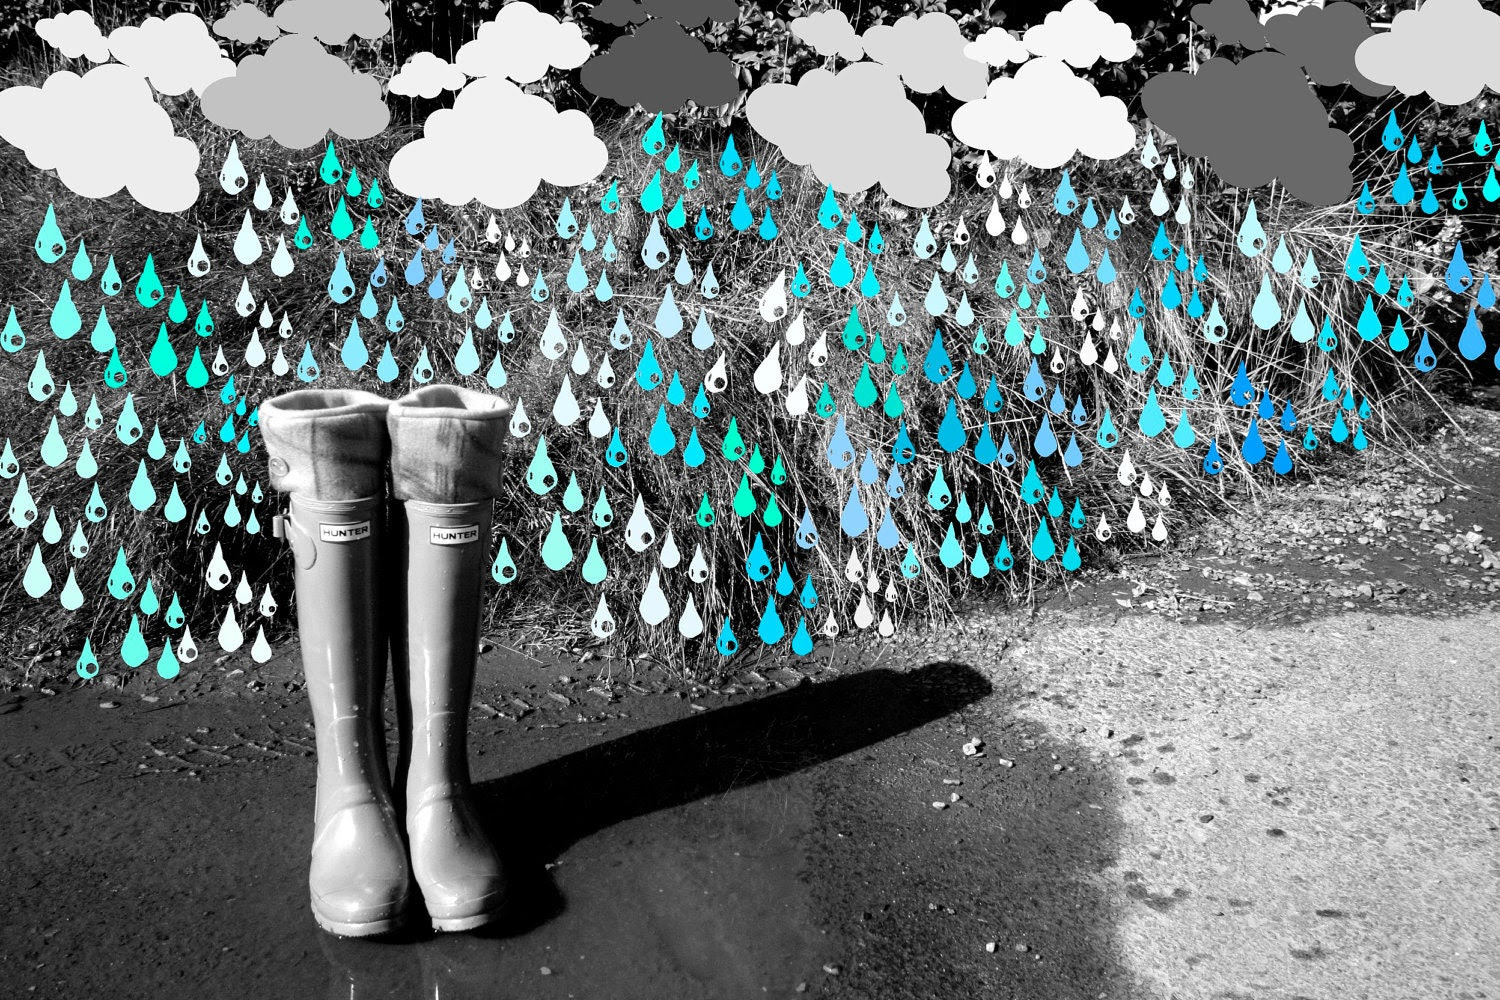 Spring Showers Fleece Rain Boot Wellington Liners SLUGS in Turquoise with a Tie-Dye Cuff, Rainy Day Style (SM/MED 6-8 Boot) - WithTheRain